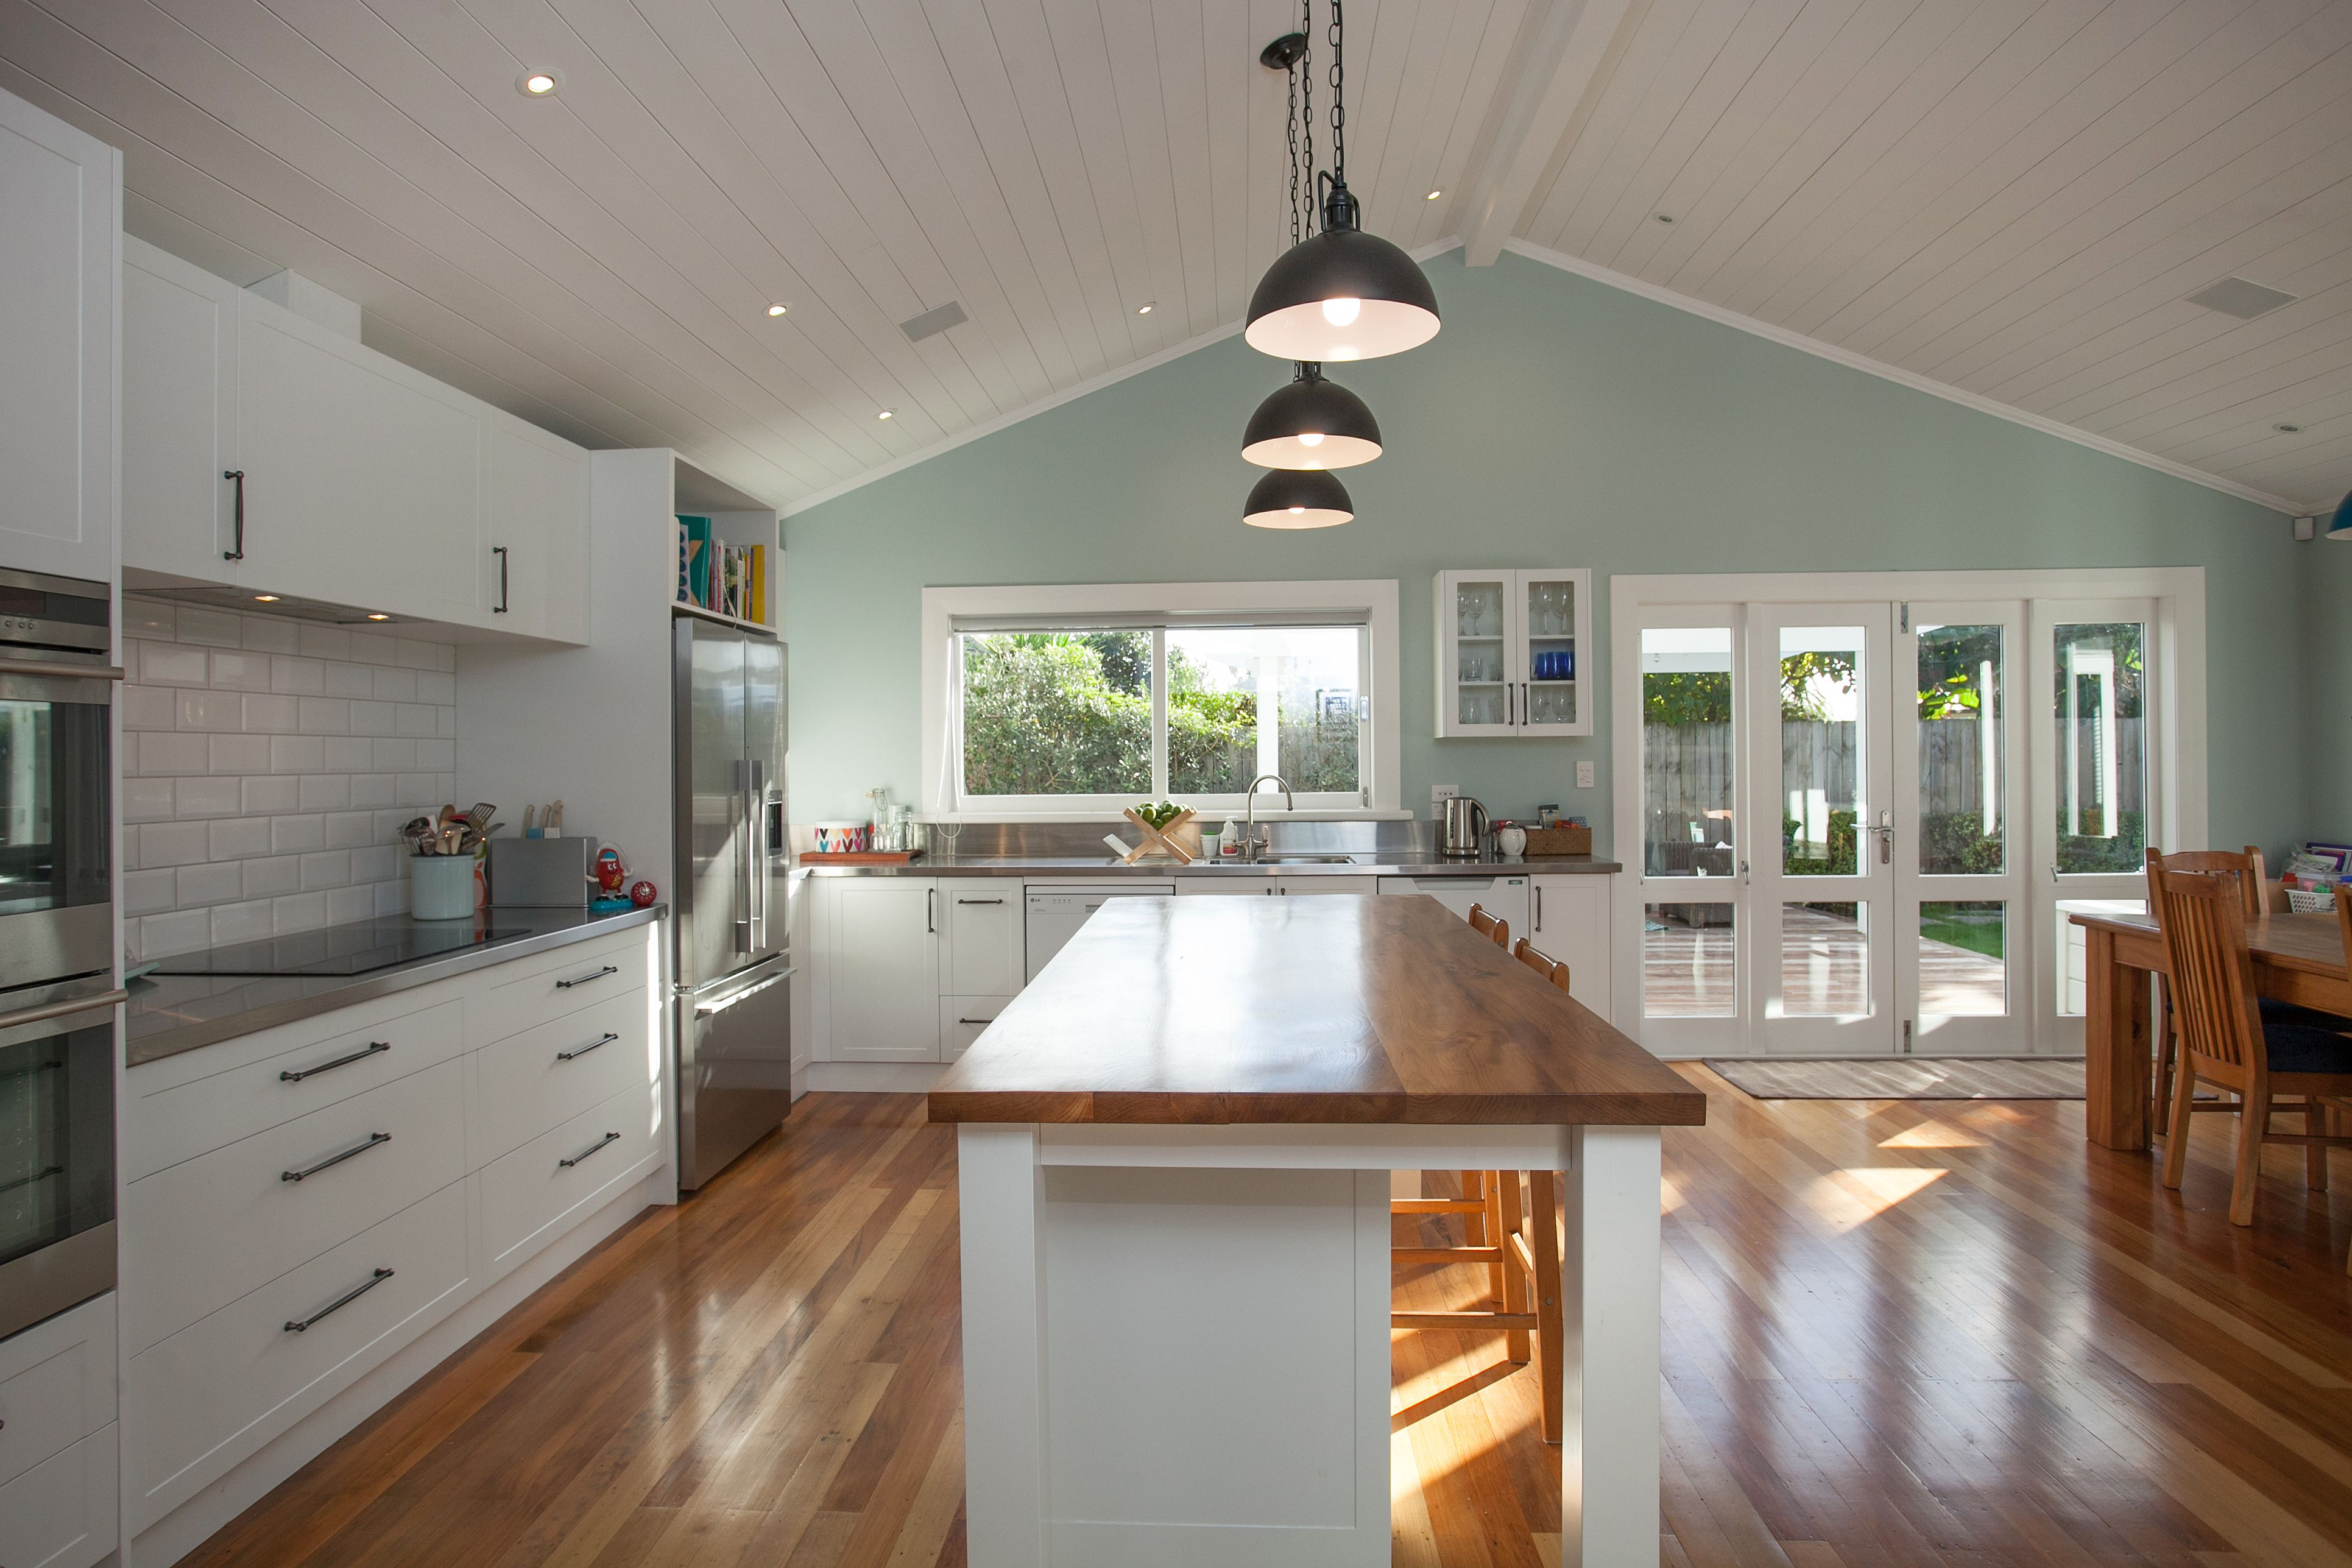 Native timber floors and kitchen island 1900's Villa